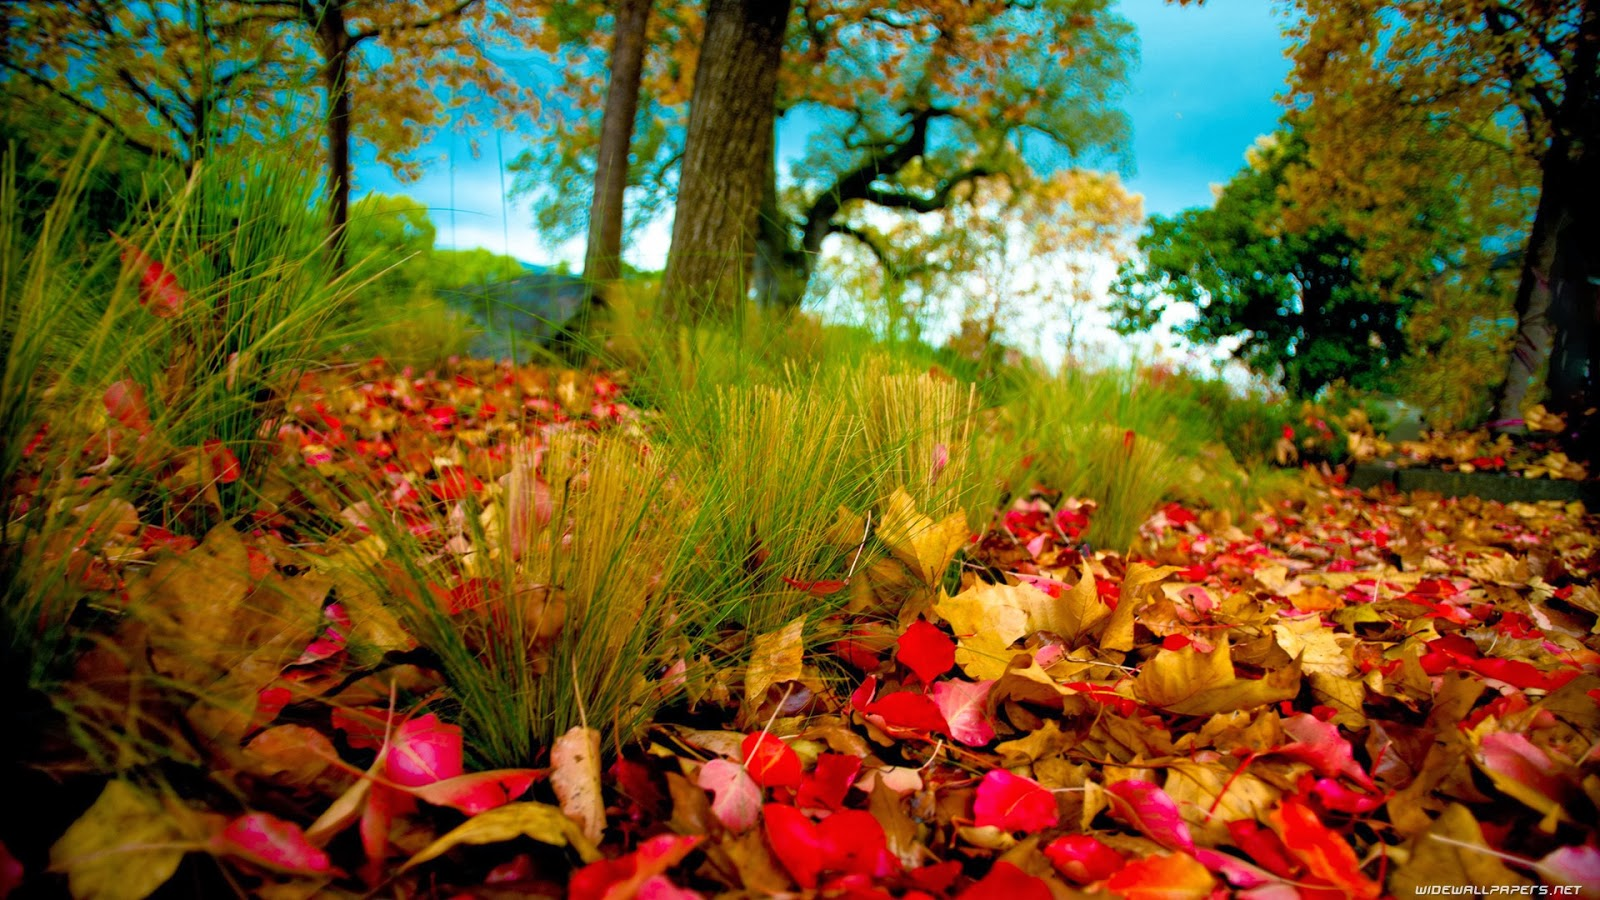 HD Wallpapers 1080p Nature autumn   Nice Pics Gallery